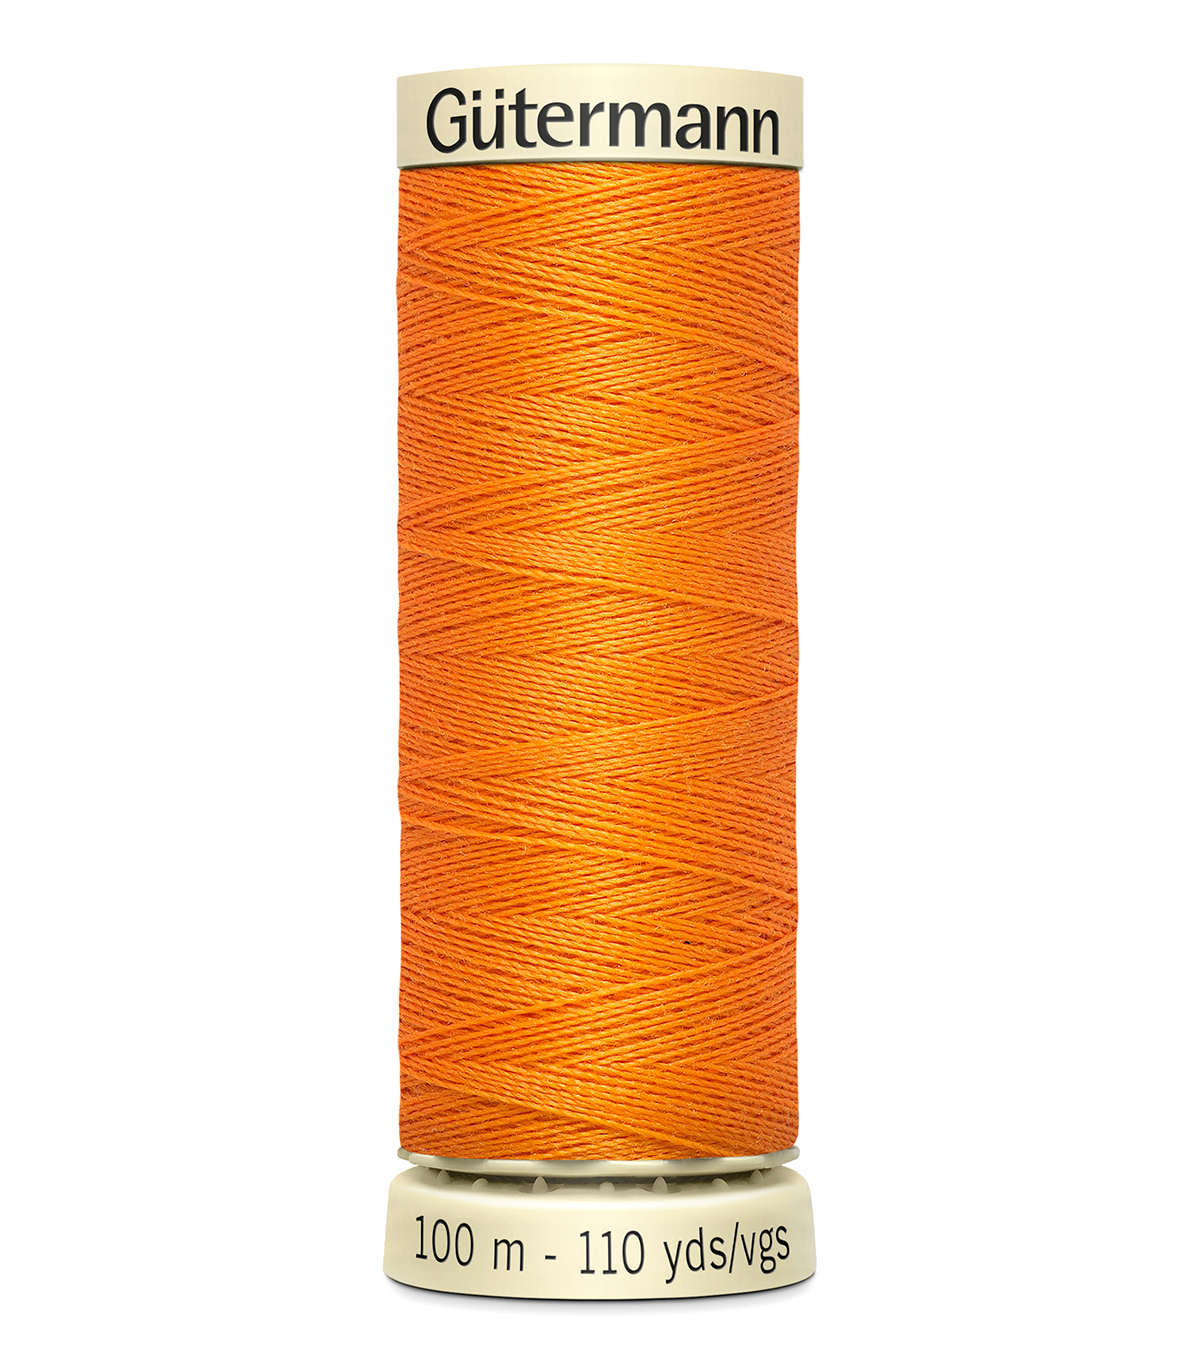 Gutermann Sew All Polyester Thread 110 Yards-Oranges & Yellows , Tangerin #462